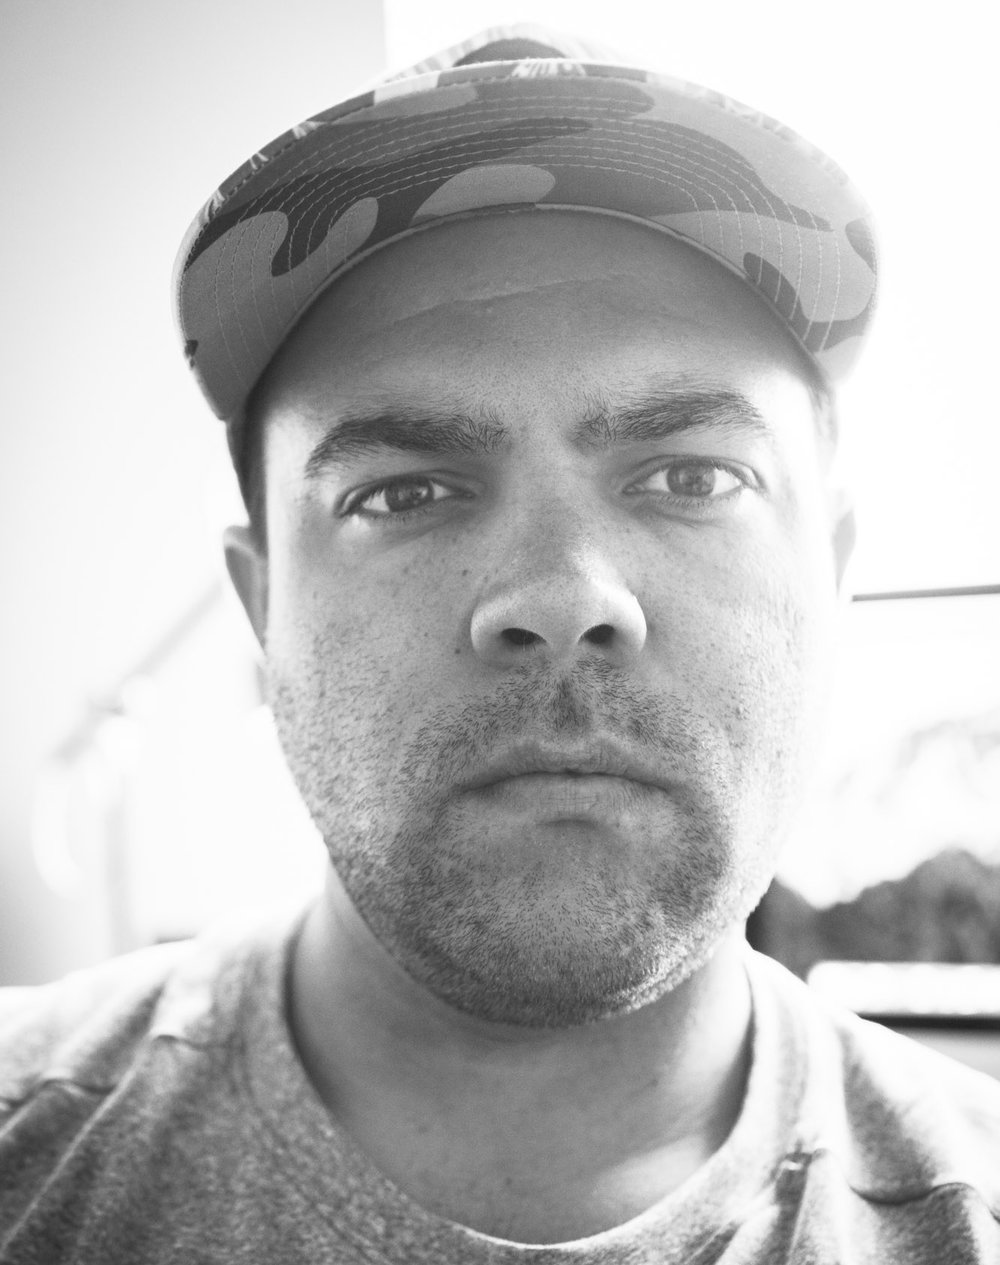 Ryan Holden - San Diego-based photo shooter and coffee drinker. A fan of long conversations and good stories.